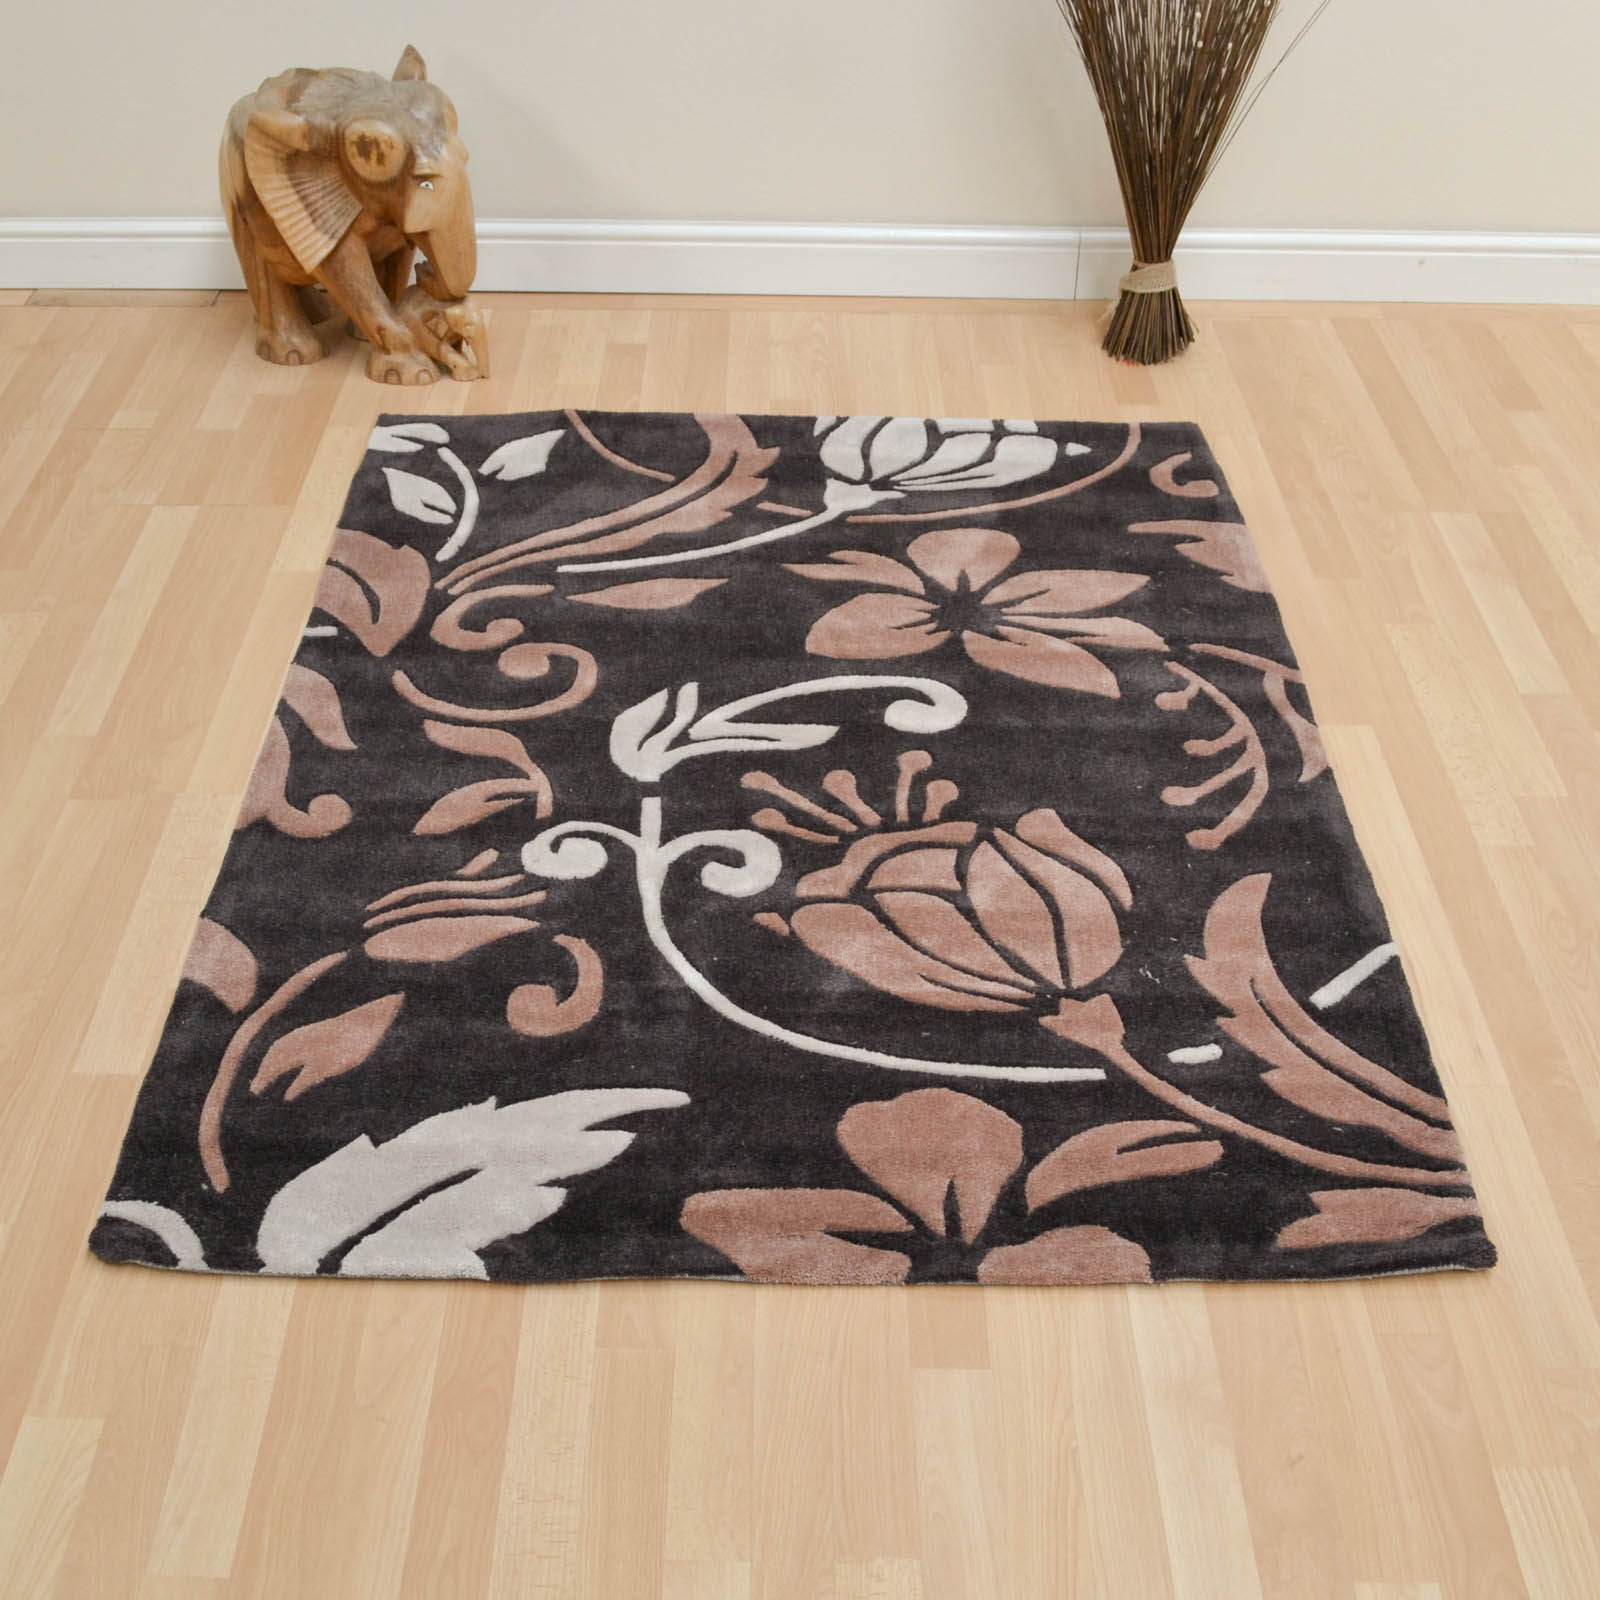 Infinite Damask Rugs in Brown Cream